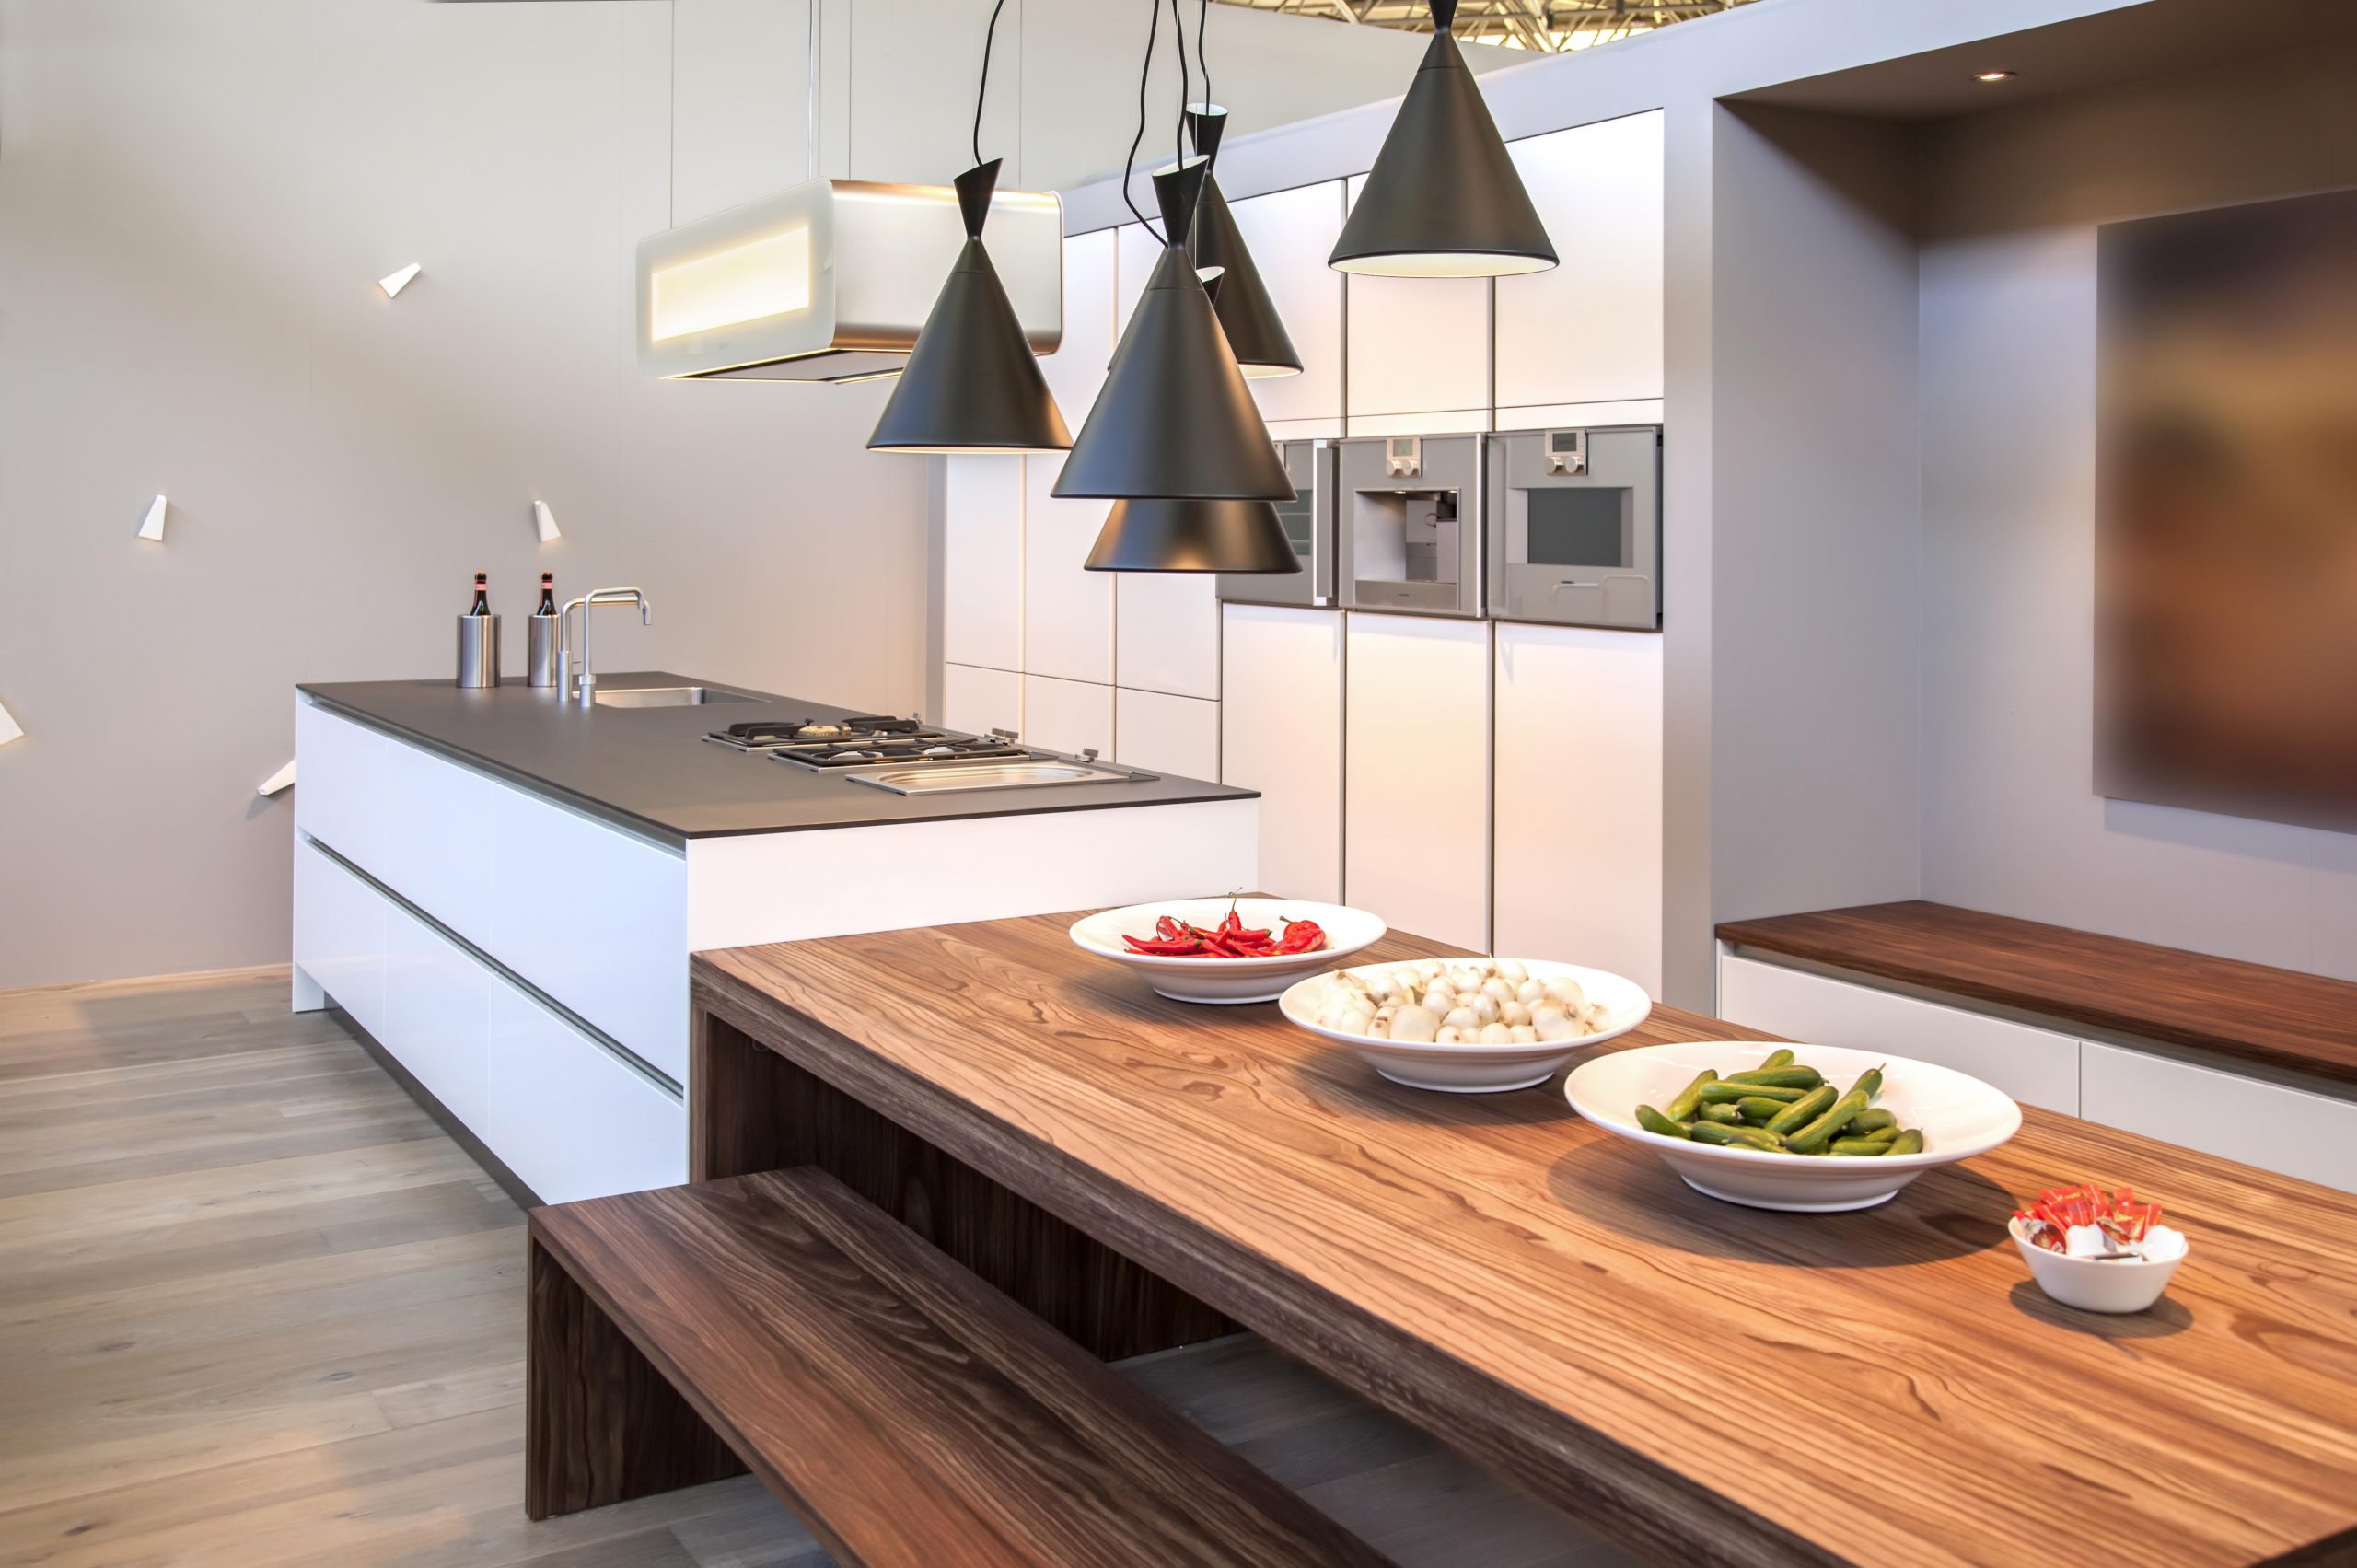 Aurora German kitchen with hanging lights and wooden dining table